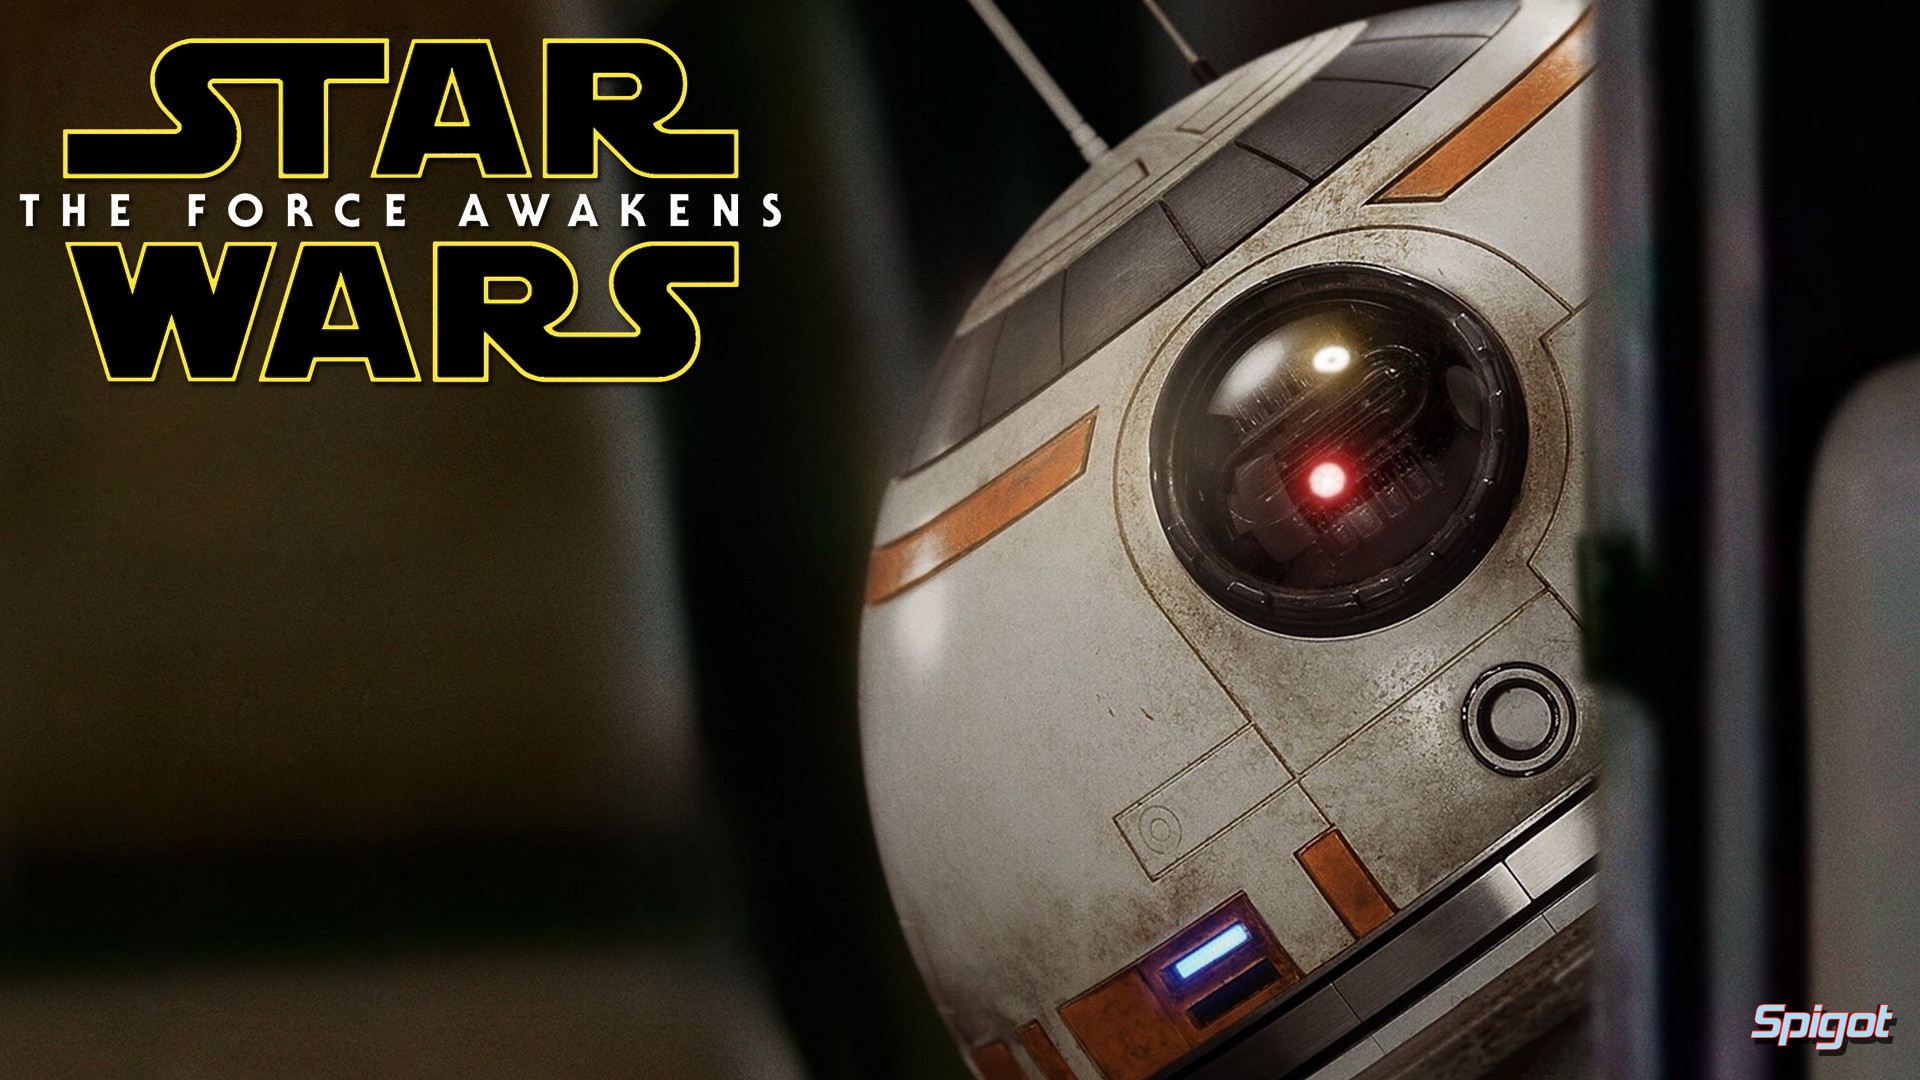 1920x1080 Star Wars The Force Awakens - 04